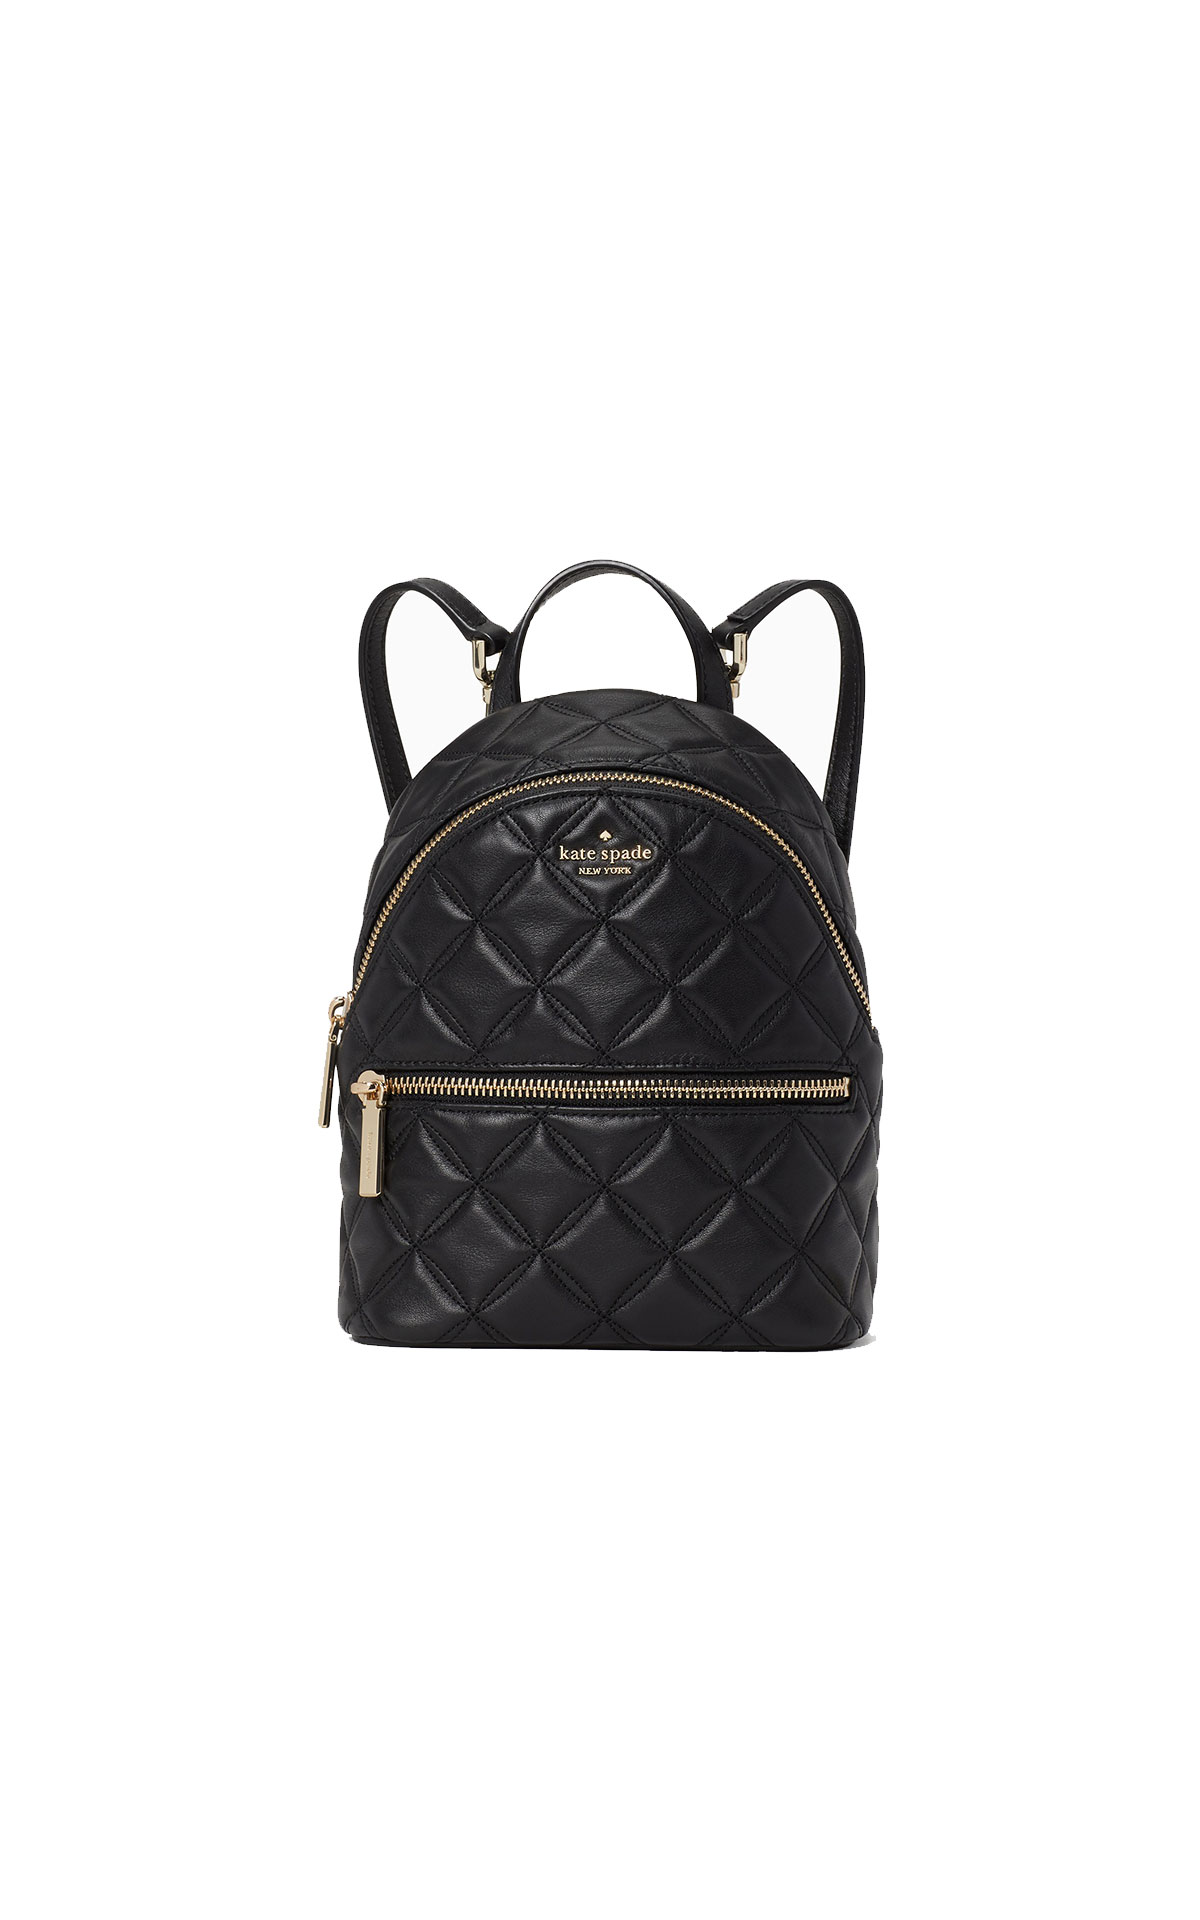 kate spade new york Natalia mini convertible backpack from Bicester Village